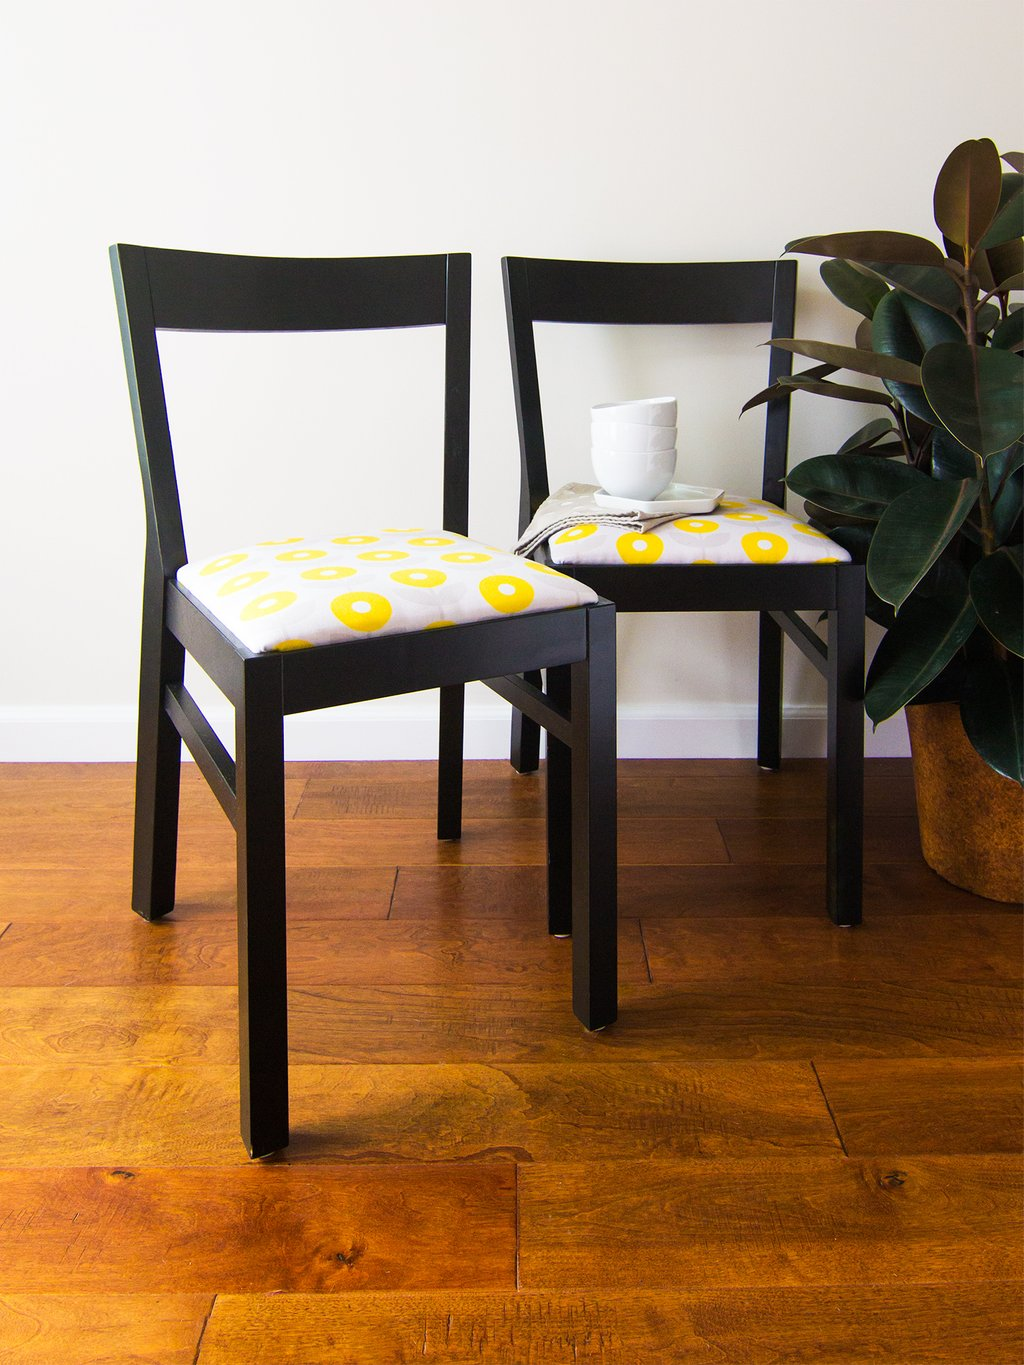 Diy Upholstered Dining Room Chair Sarah Heart Dining Room Chairs With Arms